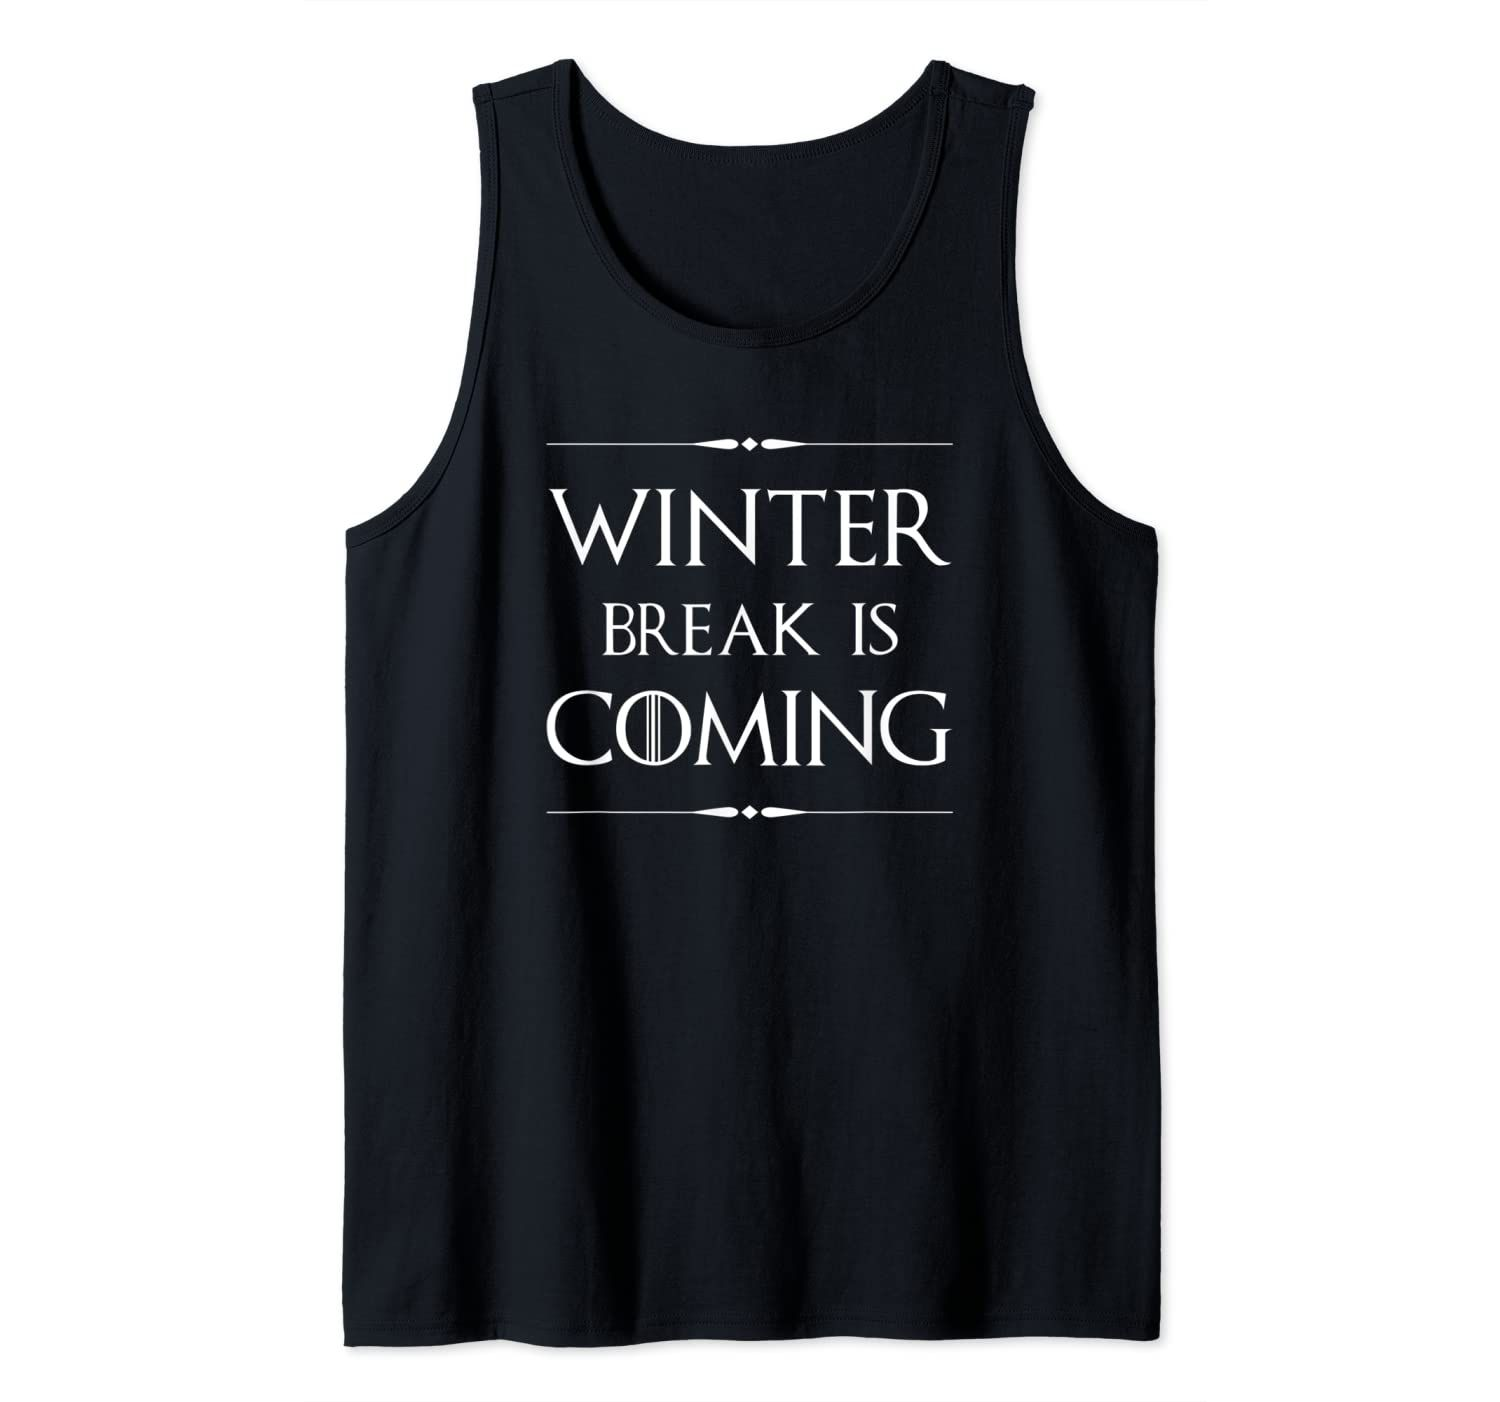 Winter Break is Coming Funny Gift for Teachers & Students  Tank Top